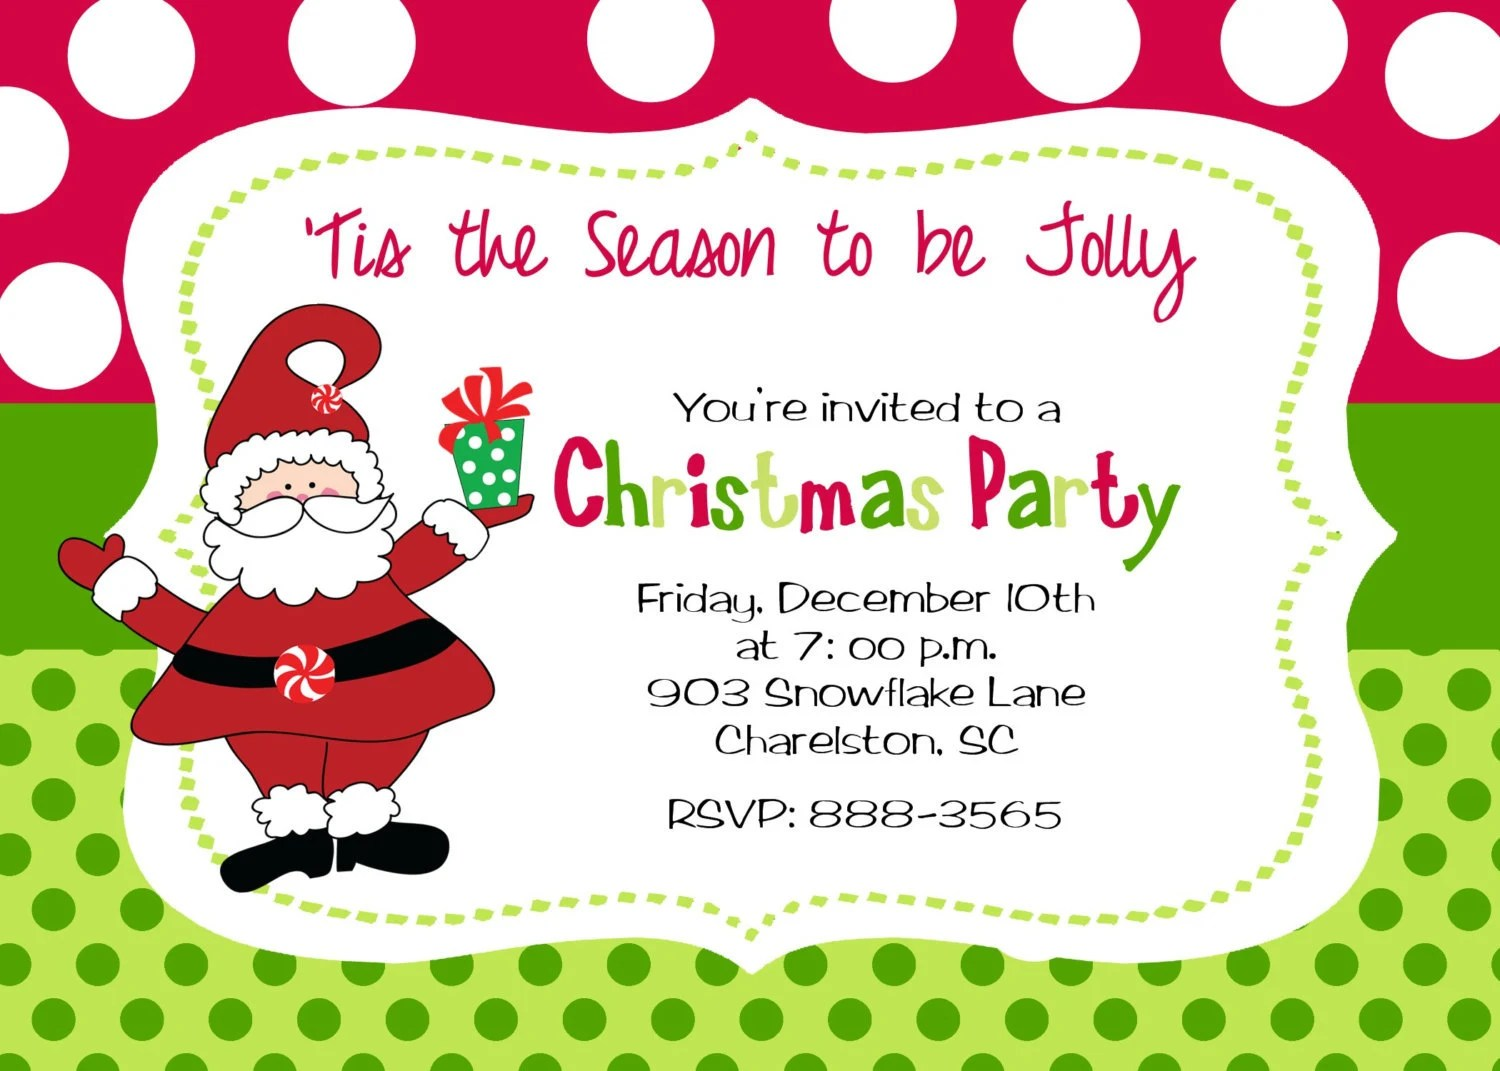 Fullsize Of Christmas Party Invitation Template